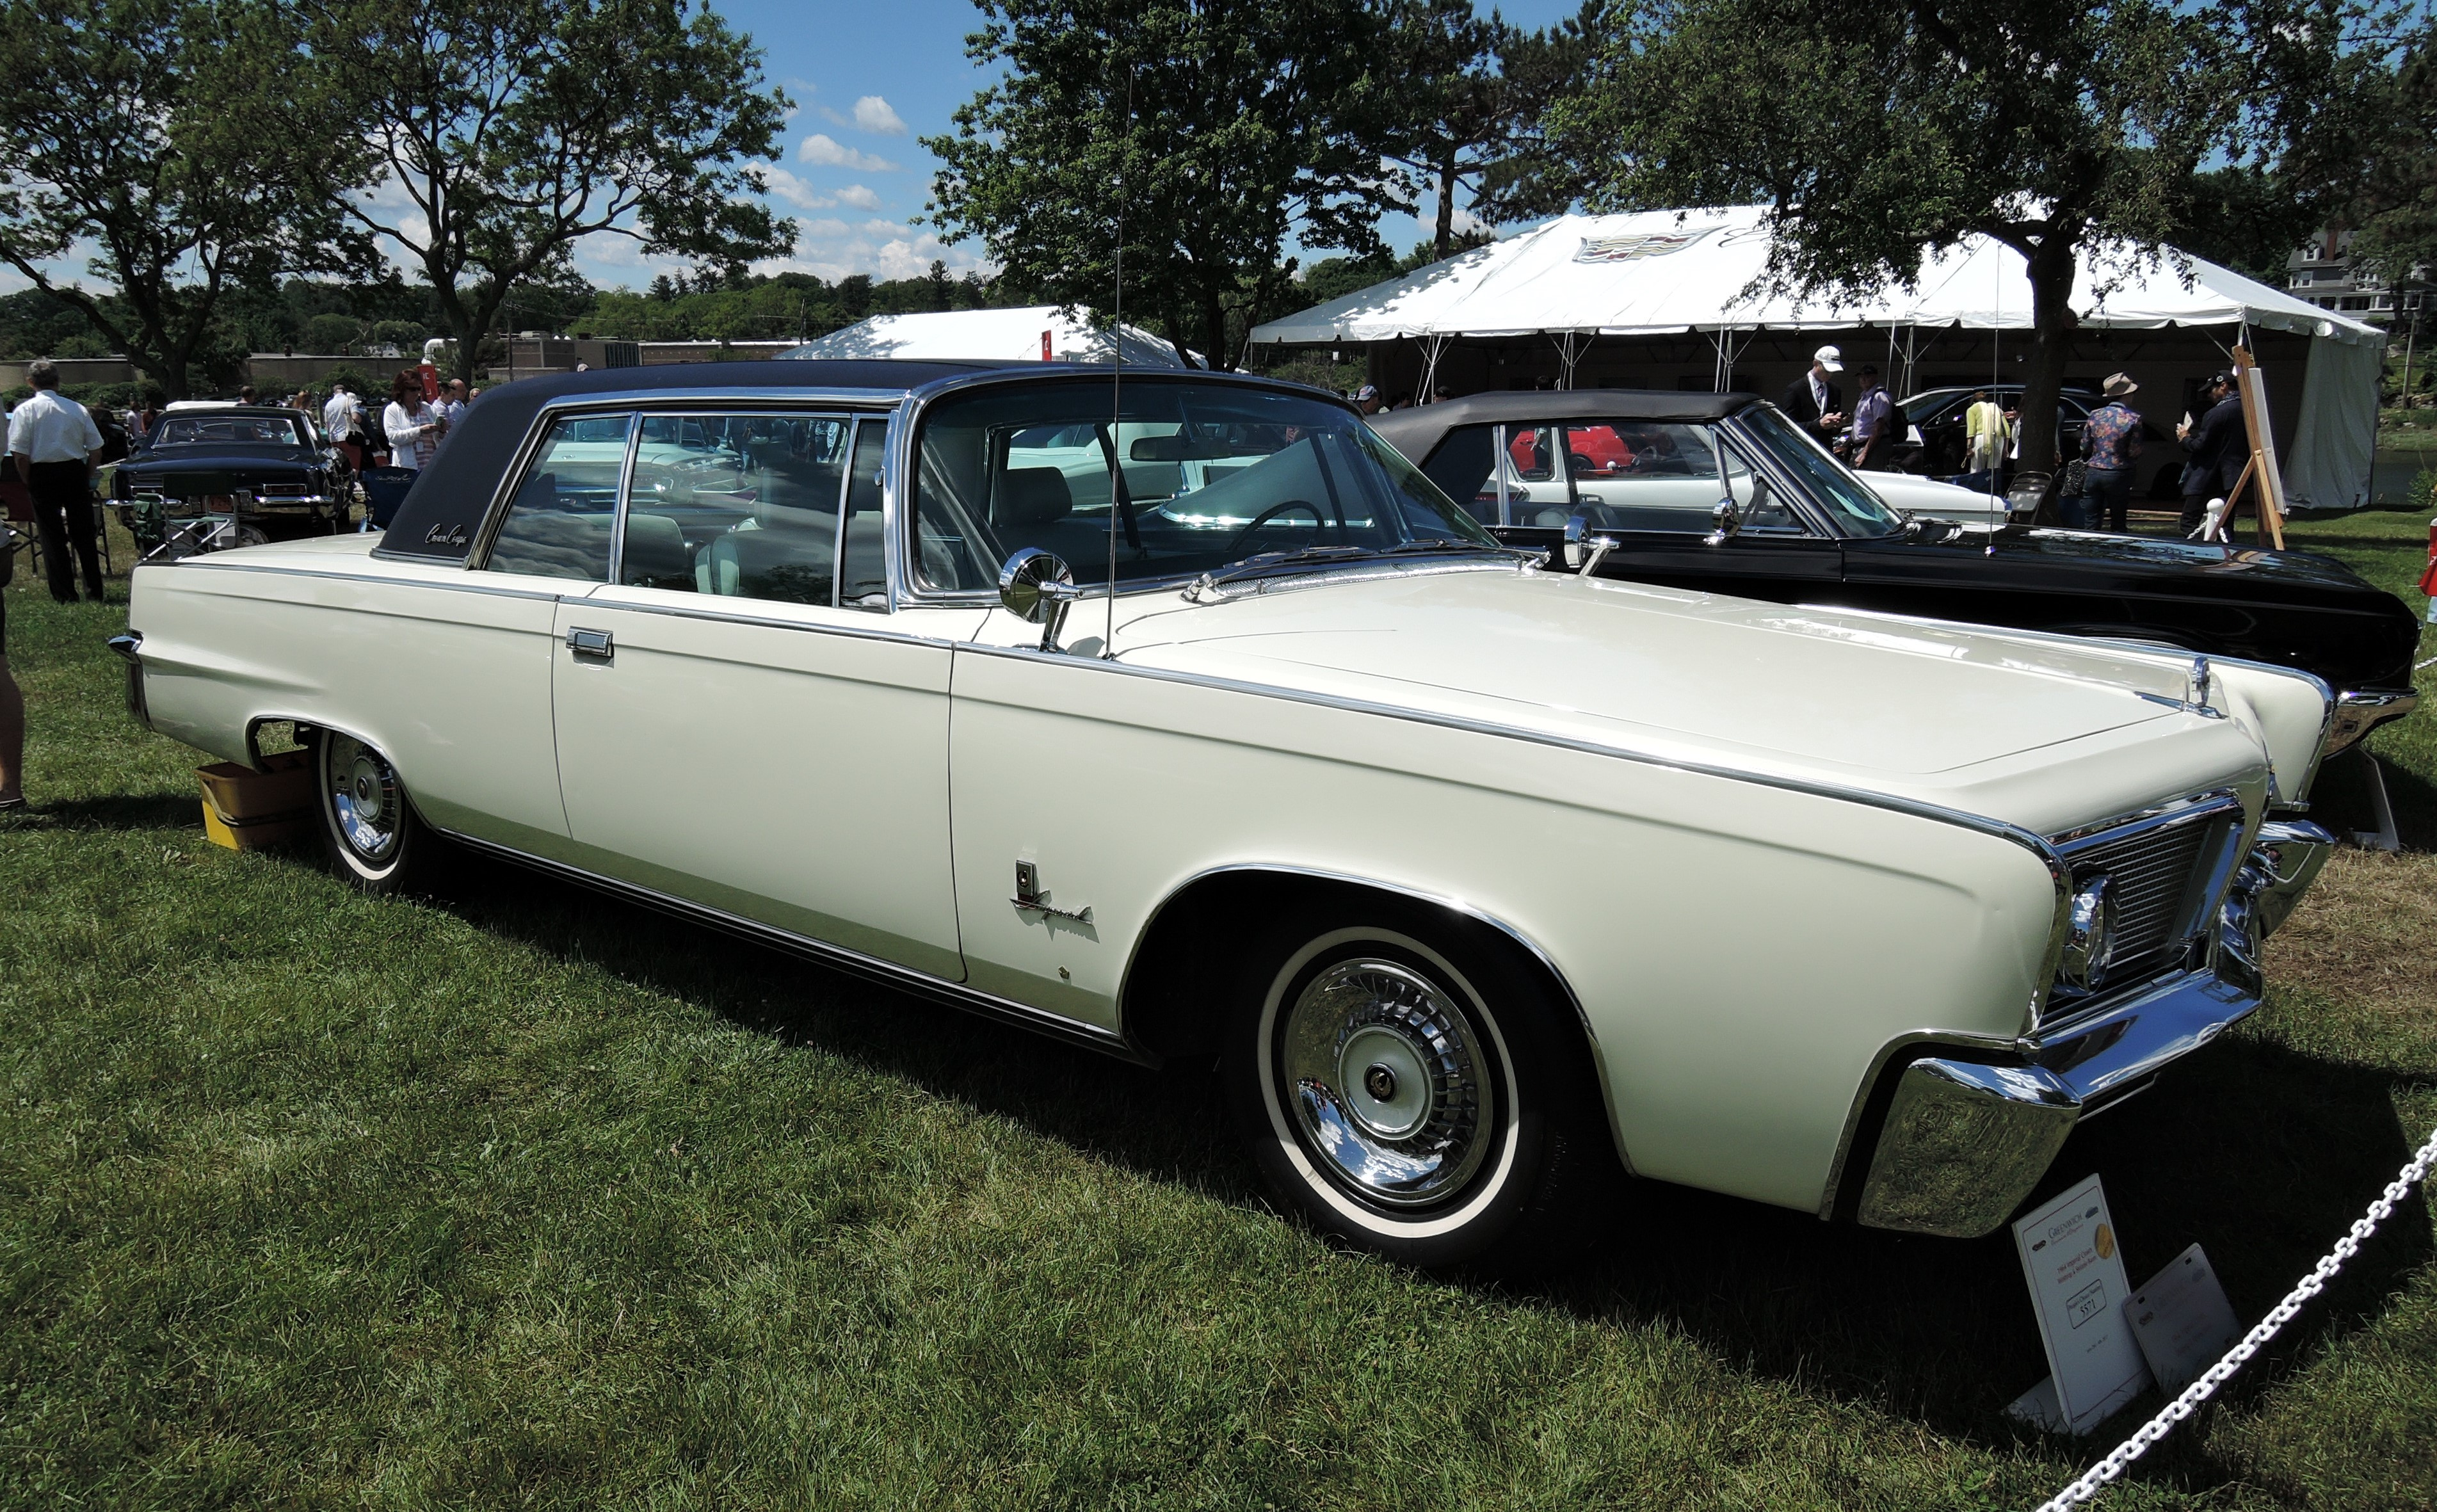 white 1964 Imperial Crown - Greenwich Concours d'Elegance 2017